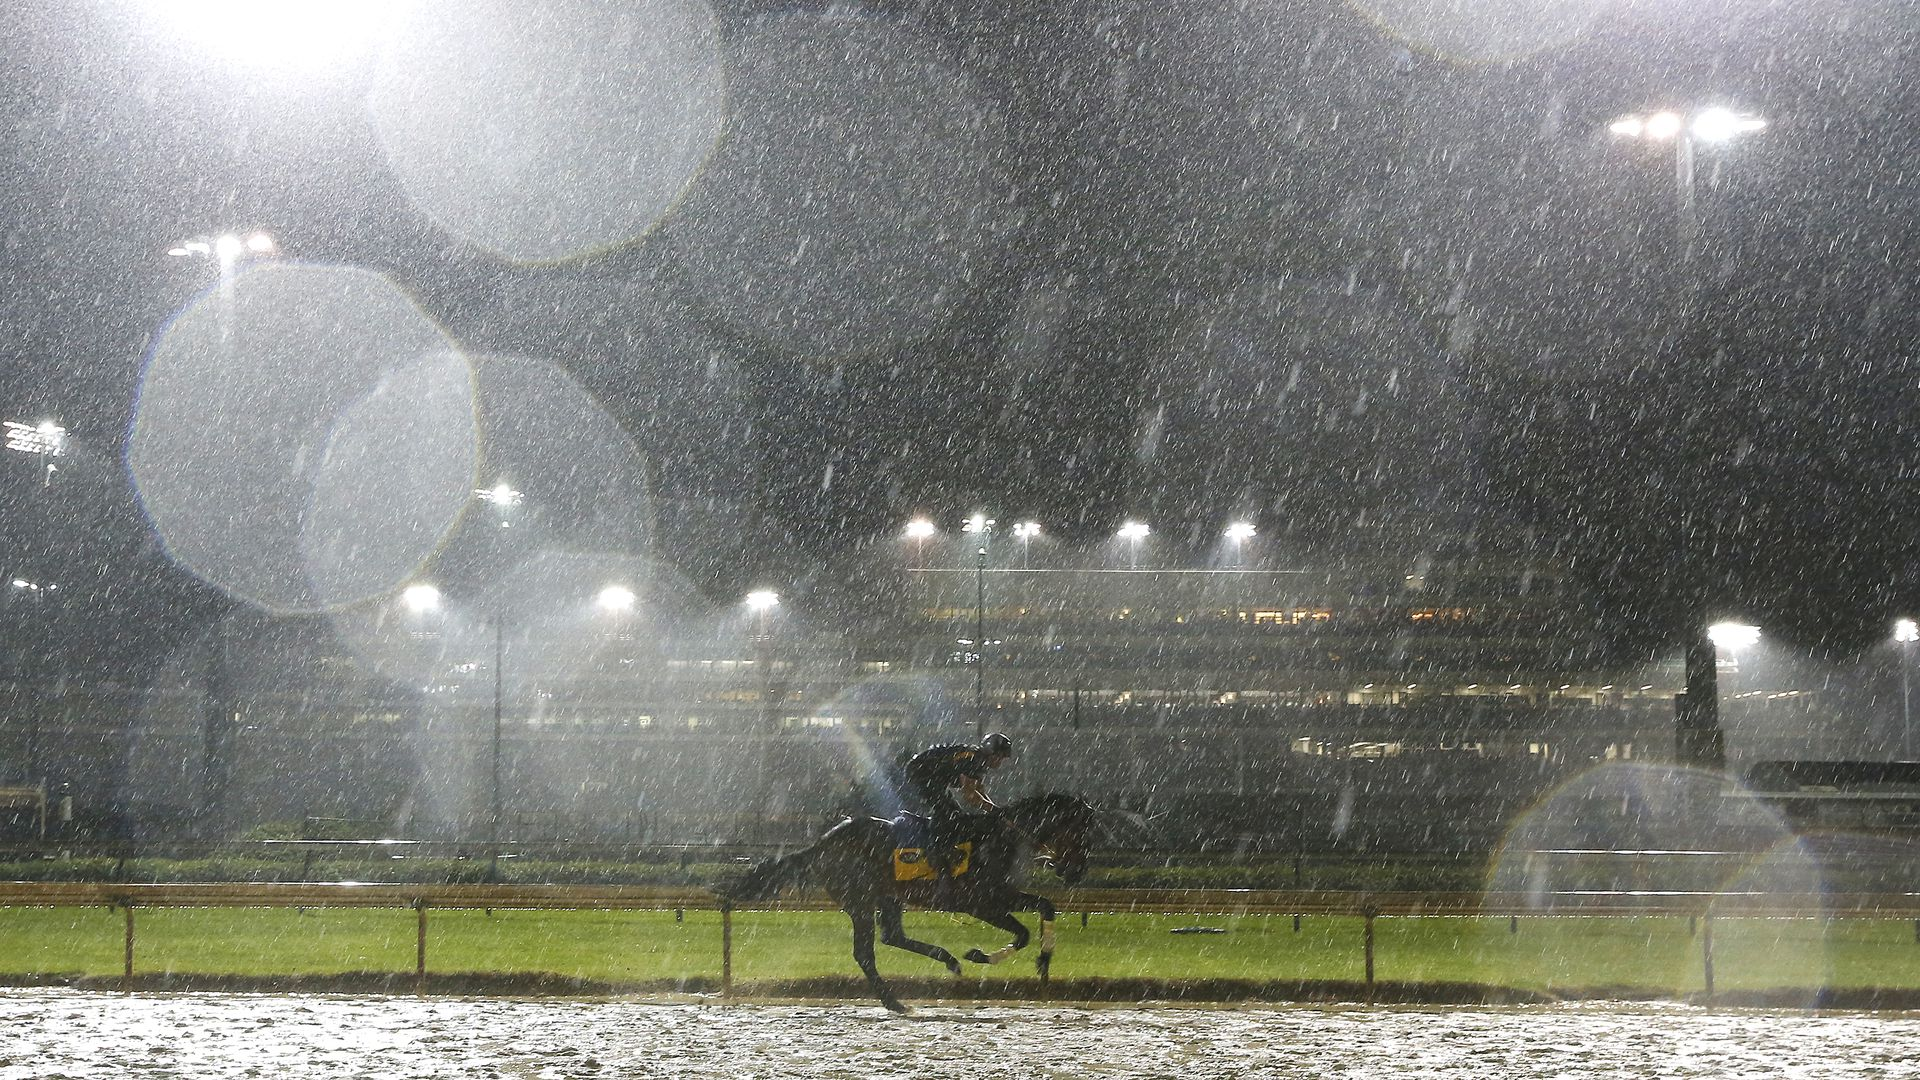 In this image, a racer rides a horse on an empty race track in the rain at night.